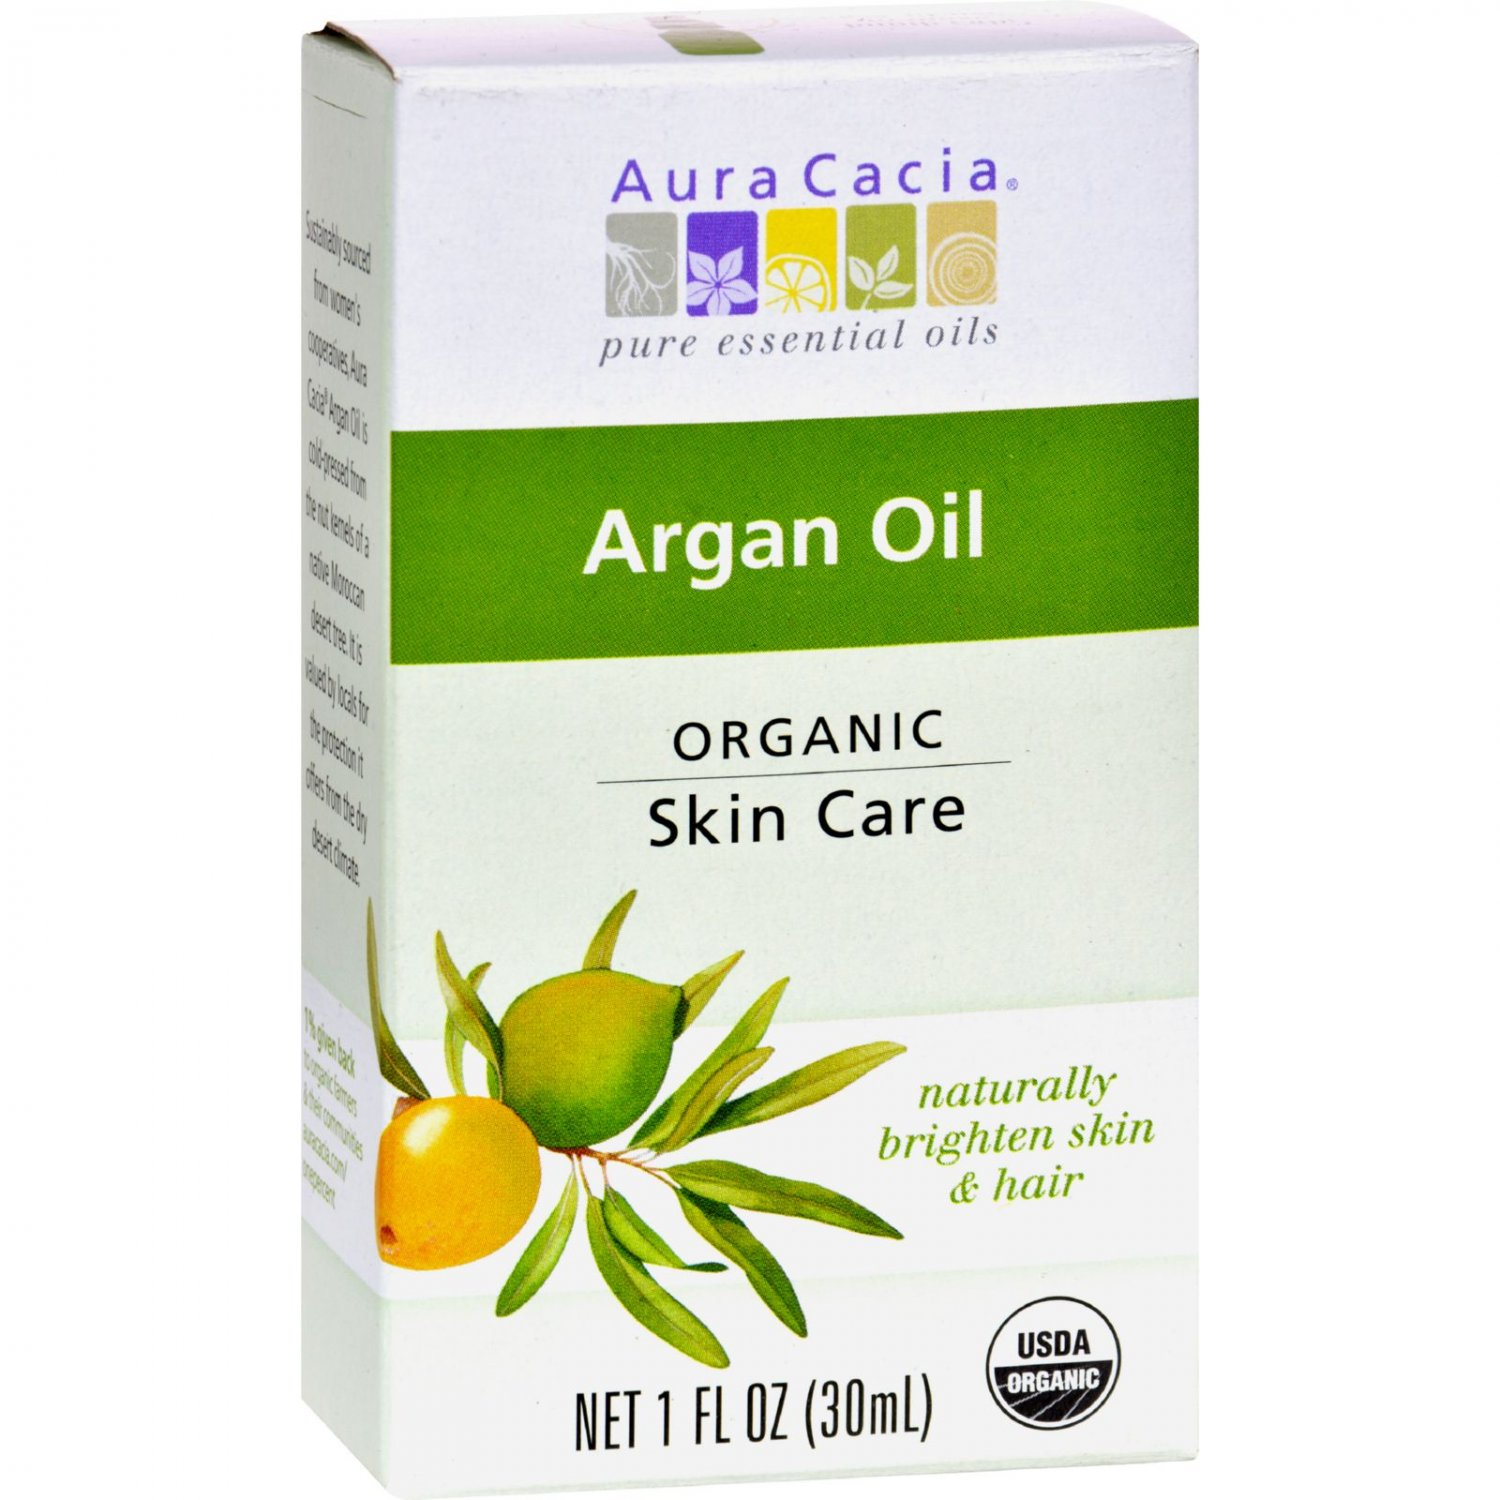 Aura Cacia Skin Care Oil - Organic - Argan Oil - 1 fl oz